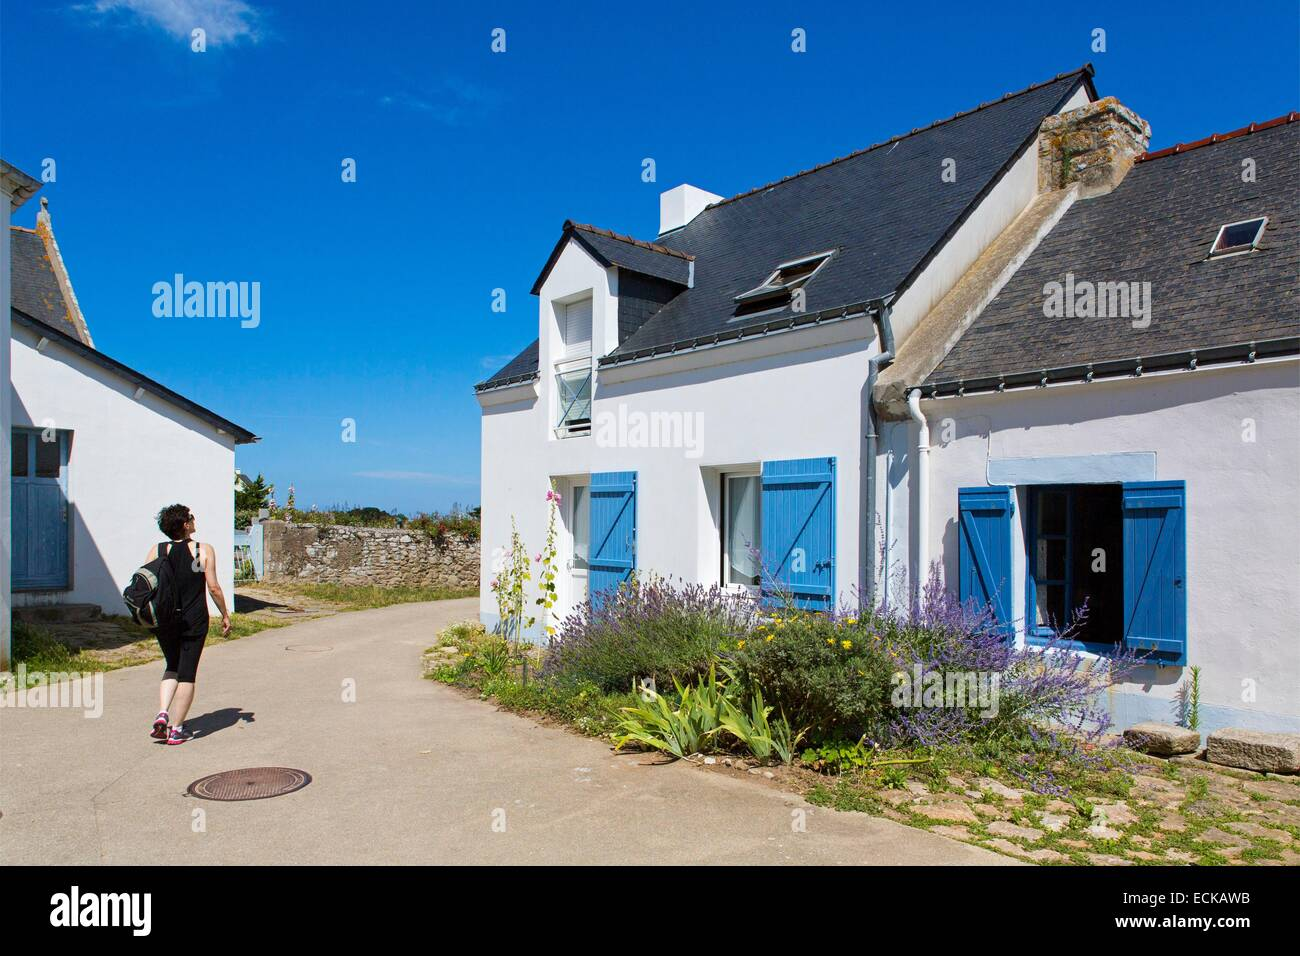 France, Morbihan, the Gulf of Morbihan, the Ponant islands, the island of Houat, the village - Stock Image